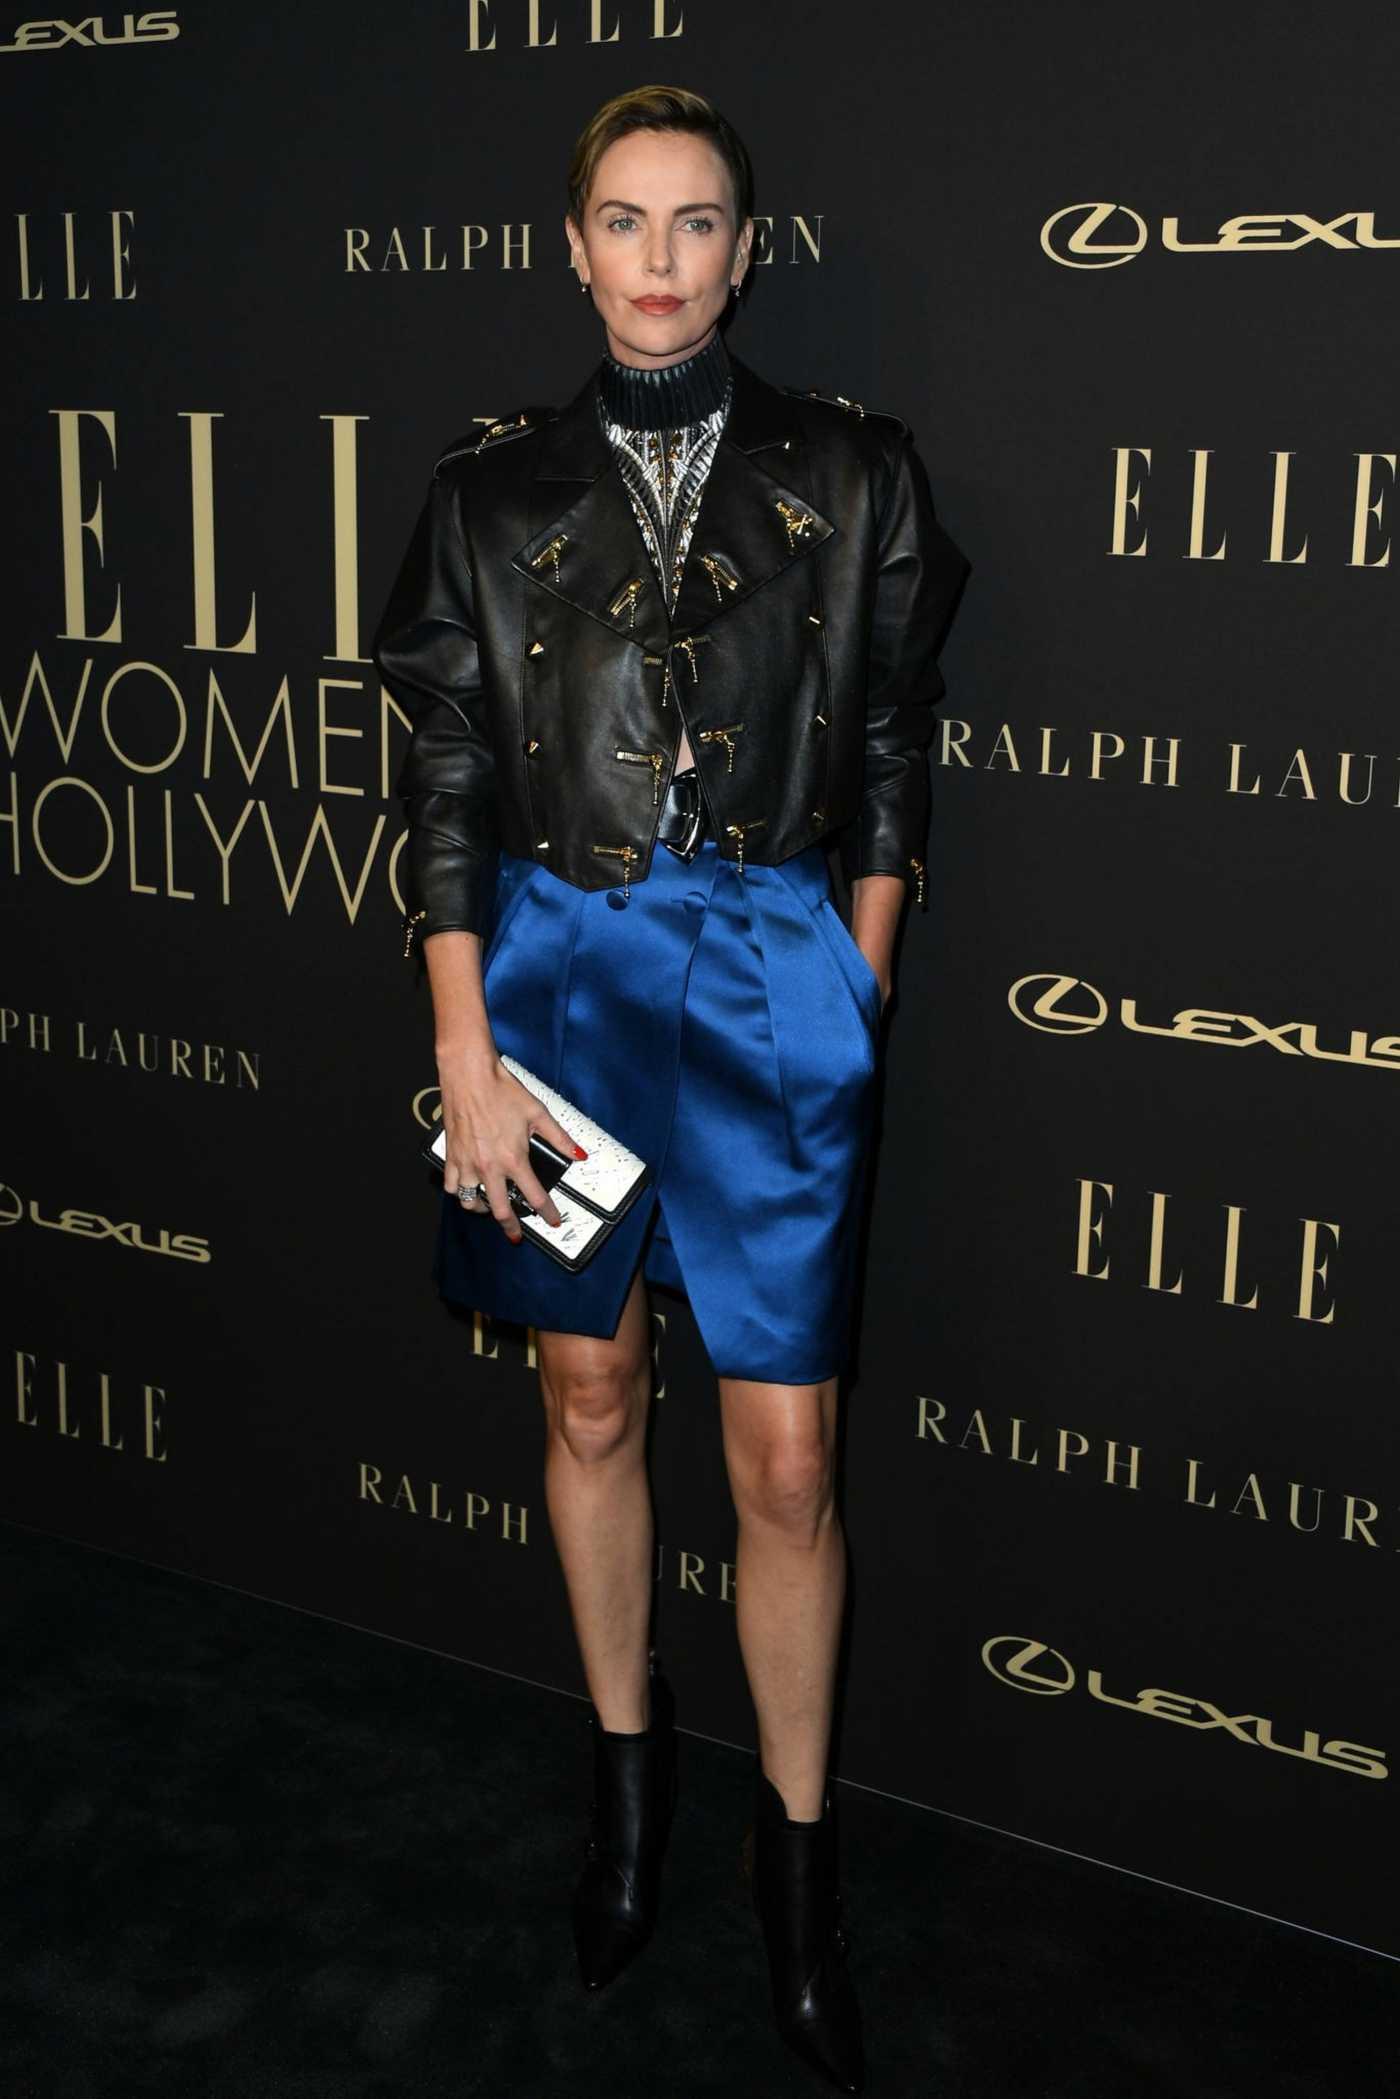 Charlize Theron Attends the 26th Annual Elle Women in Hollywood Celebration in Beverly Hills 10/14/2019